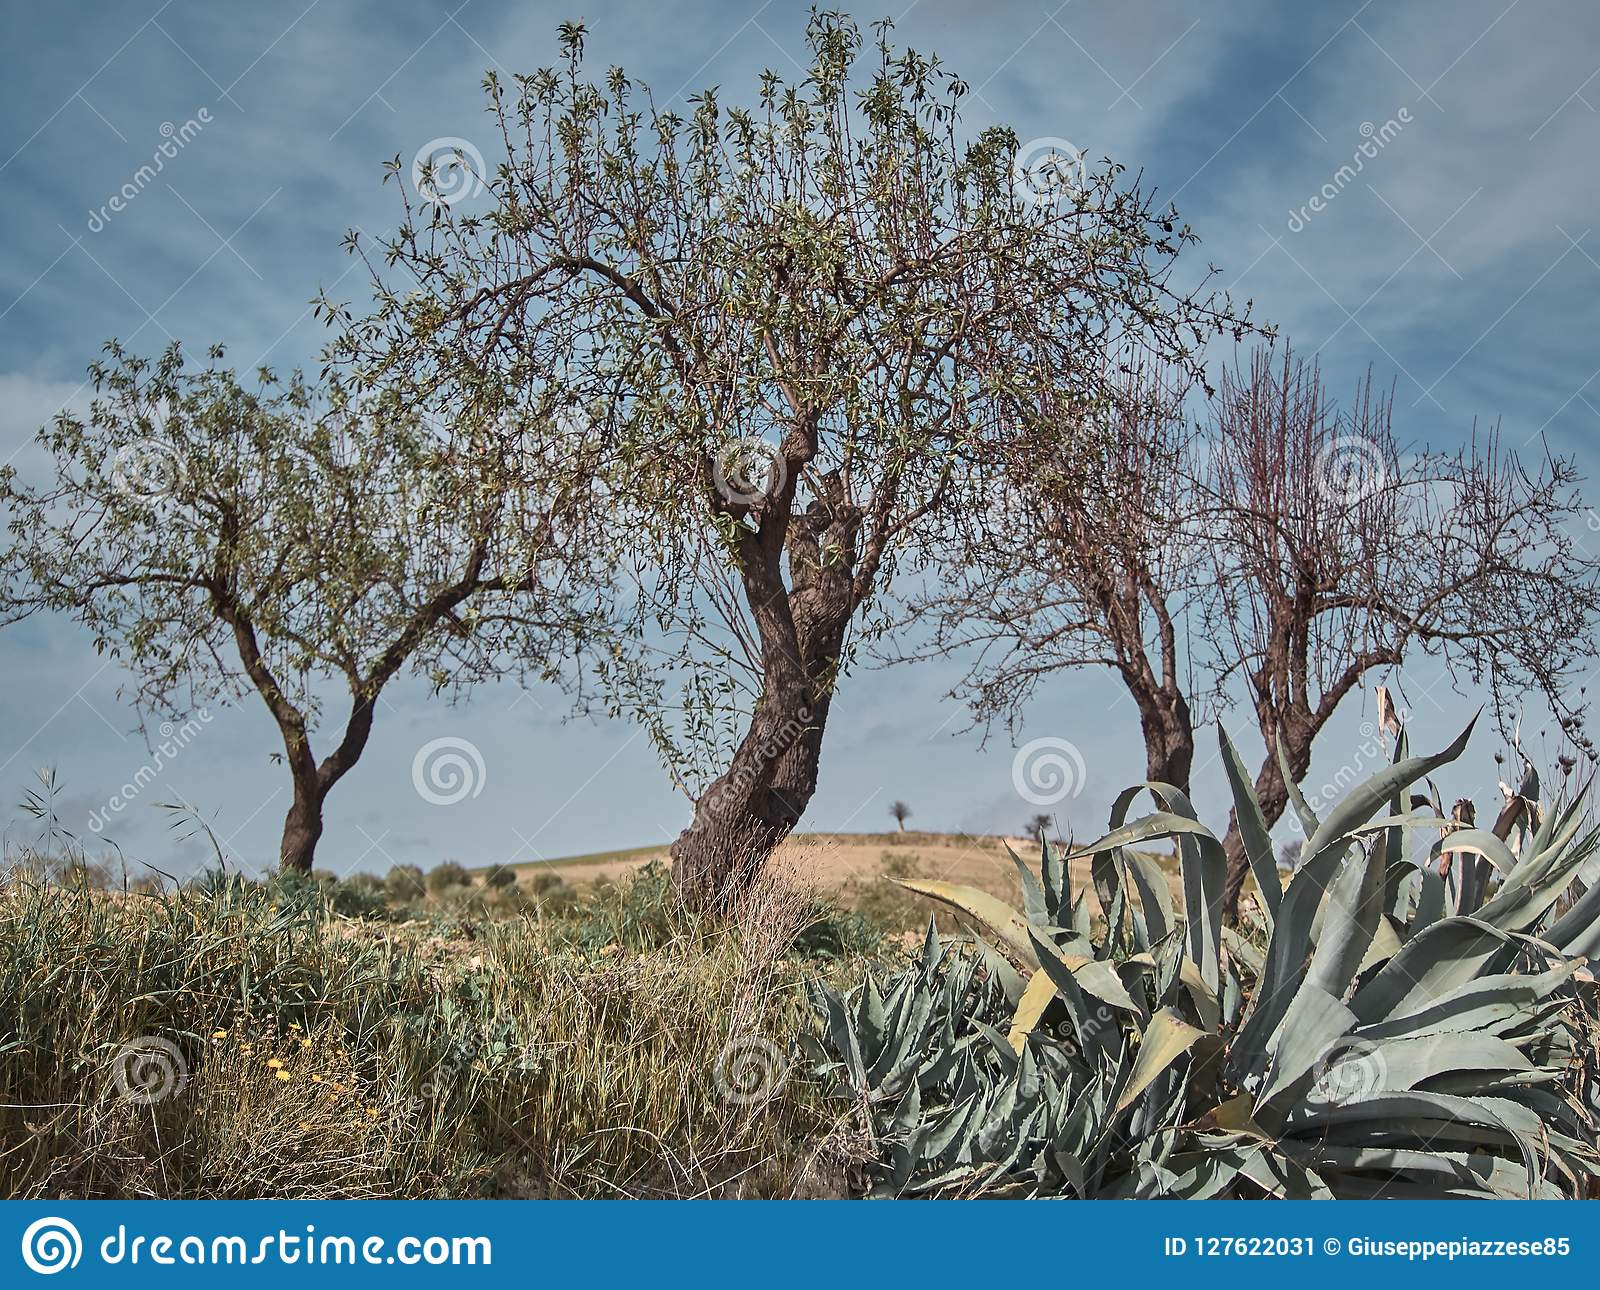 Shot of a rural environment with olives trees